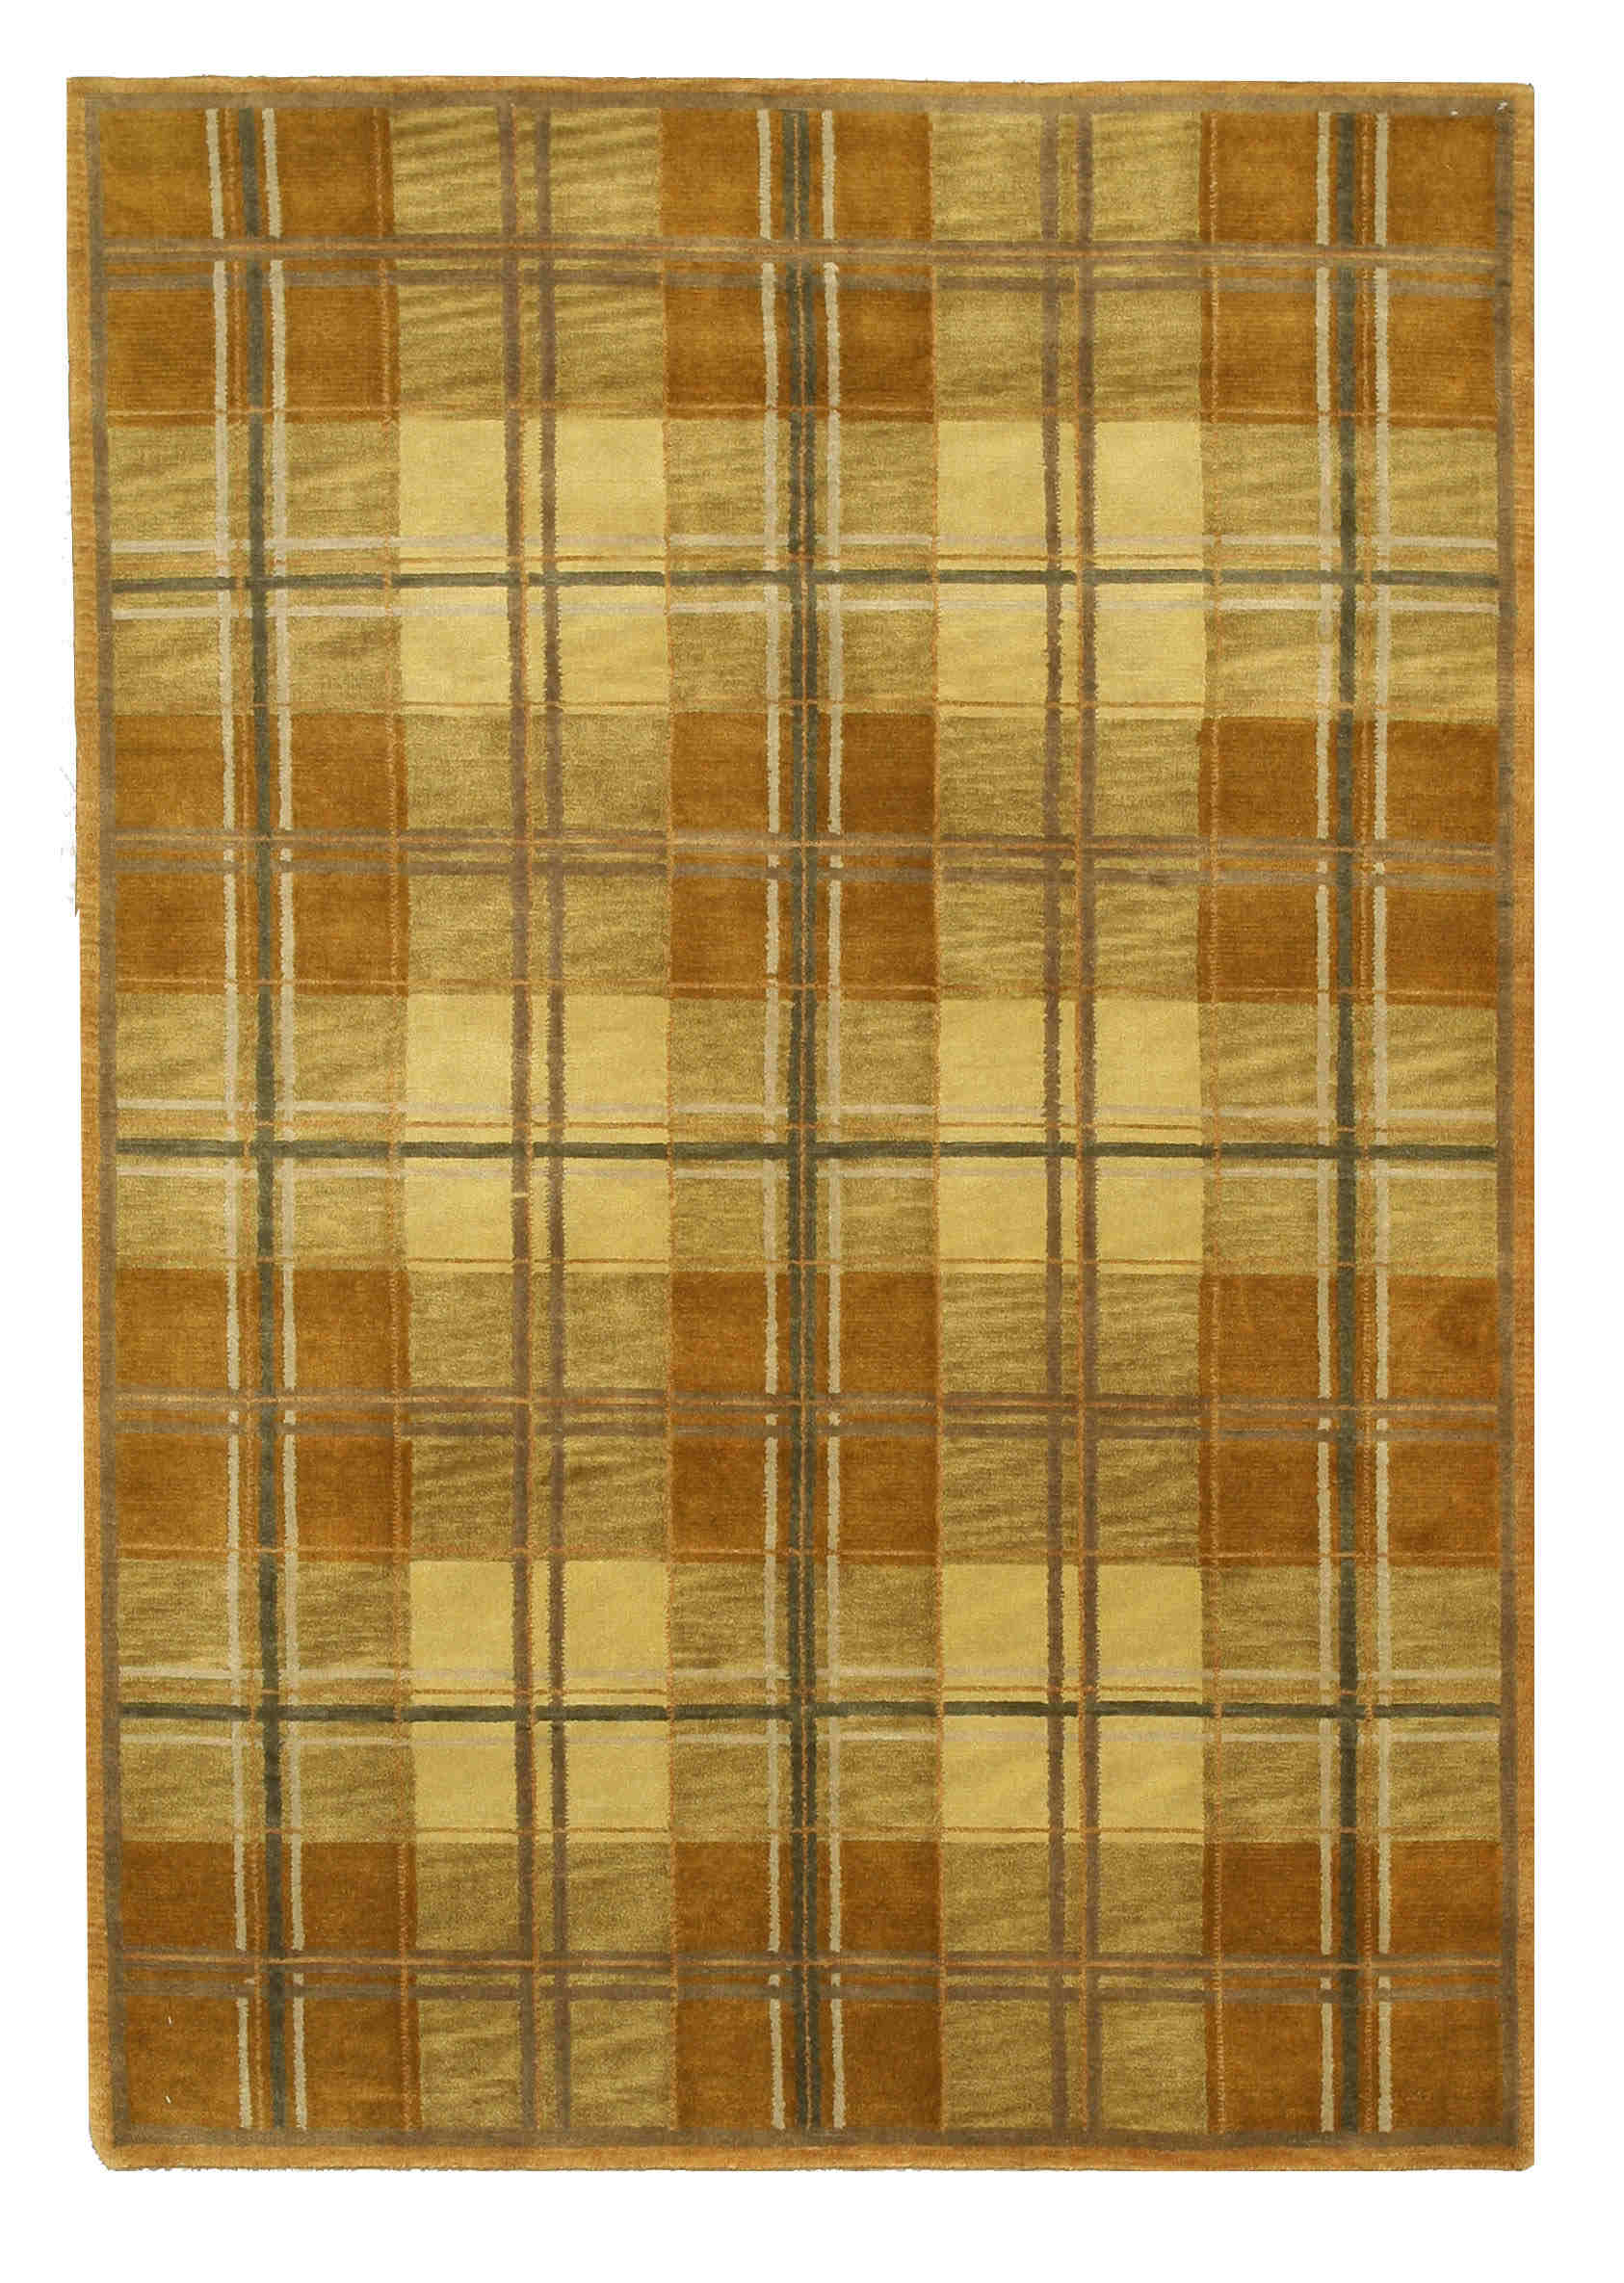 Eorc 16304 Brown Hand Knotted Wool Tartan Rug